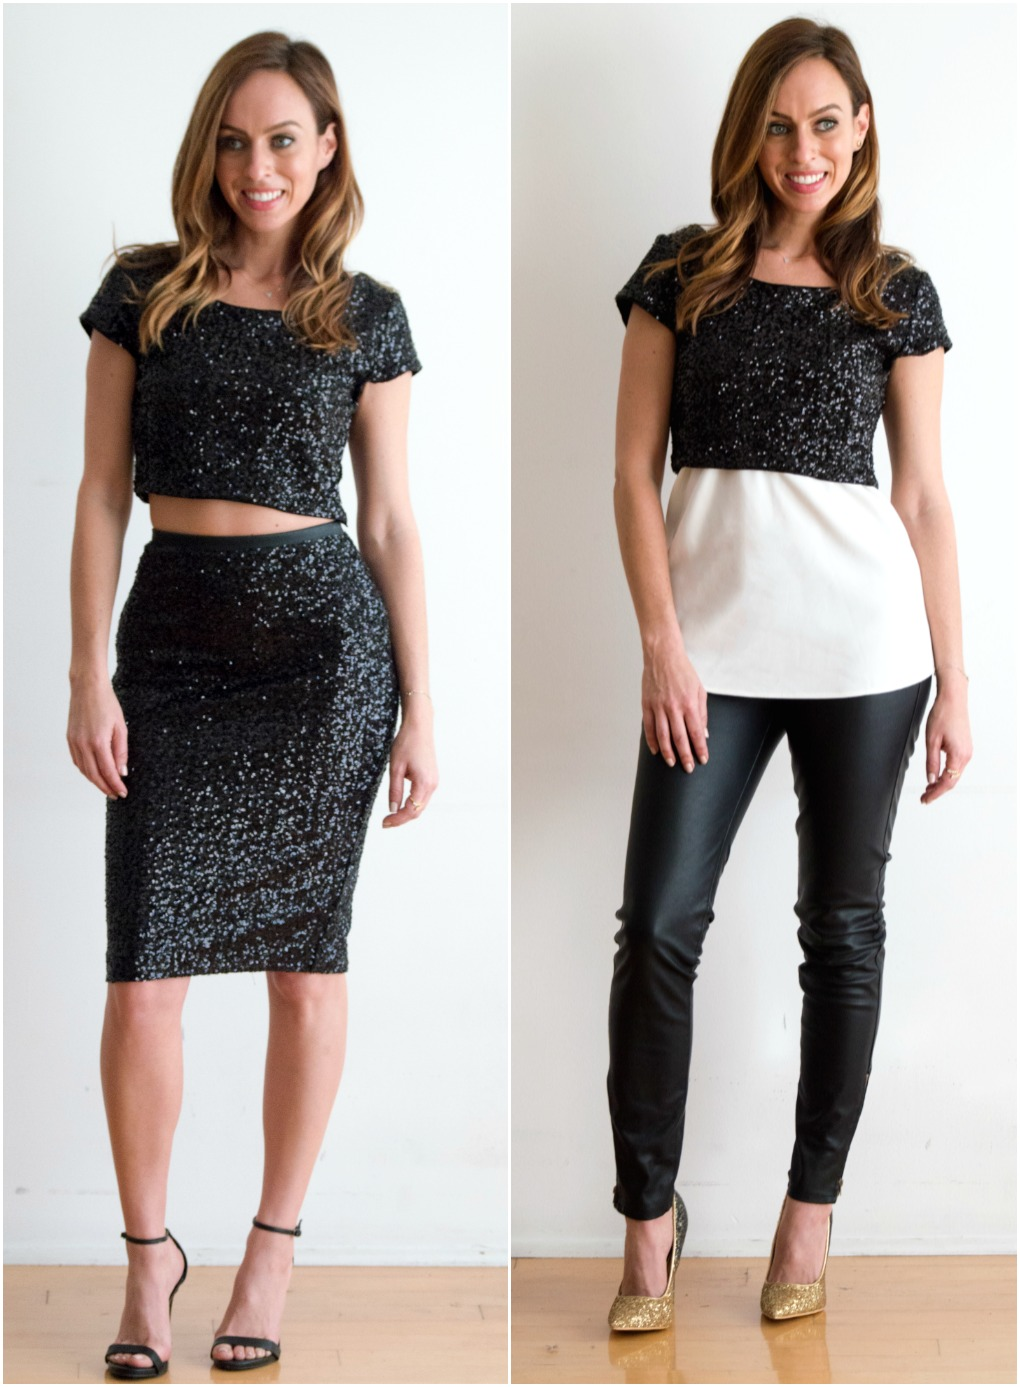 Sydne Style shows how to wear a sequin crop top for new years eve outfit ideas